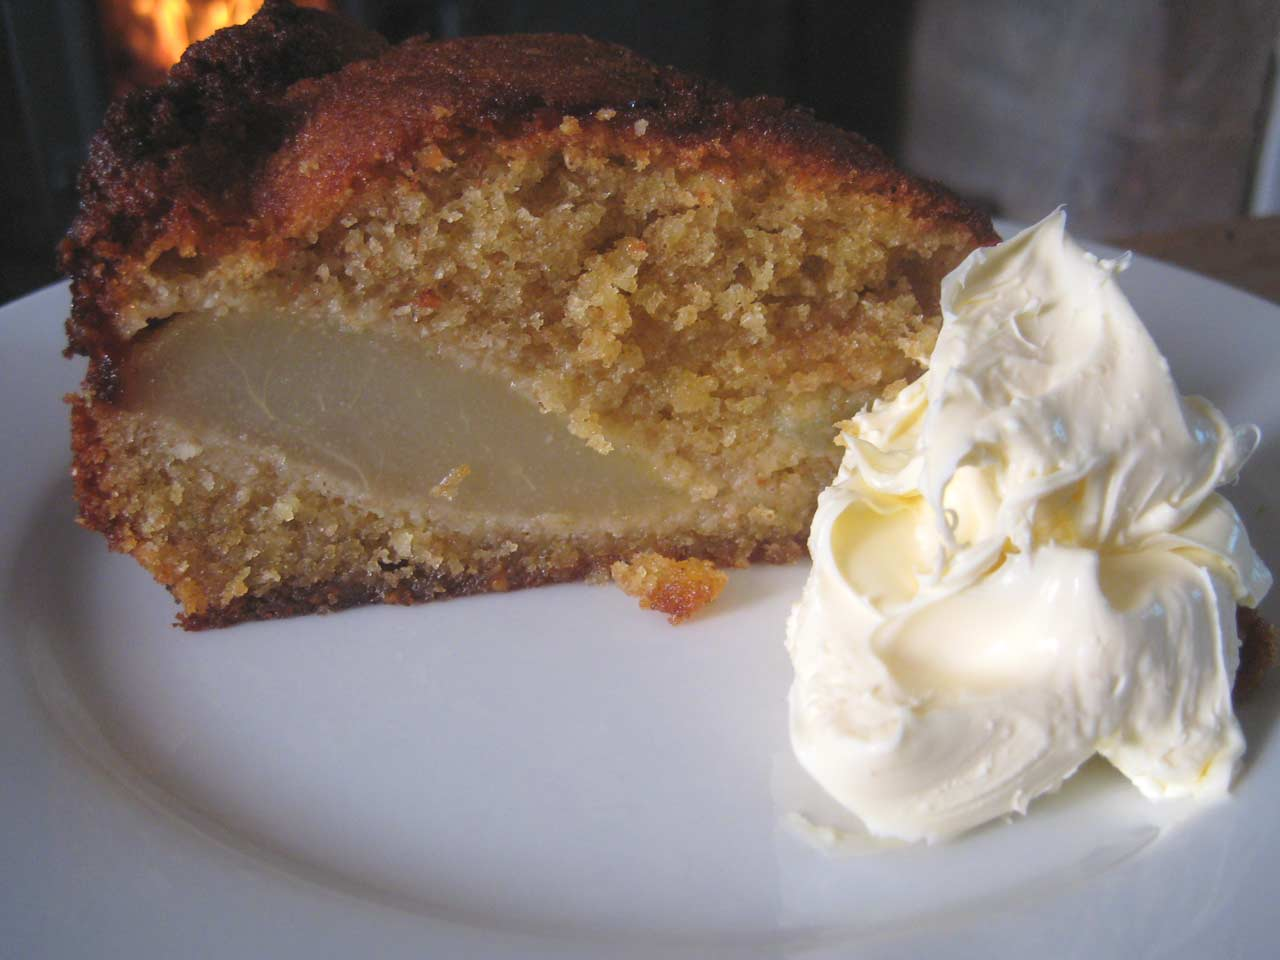 Hugh Fearnley-Whittingstall's pear and almond pudding cake